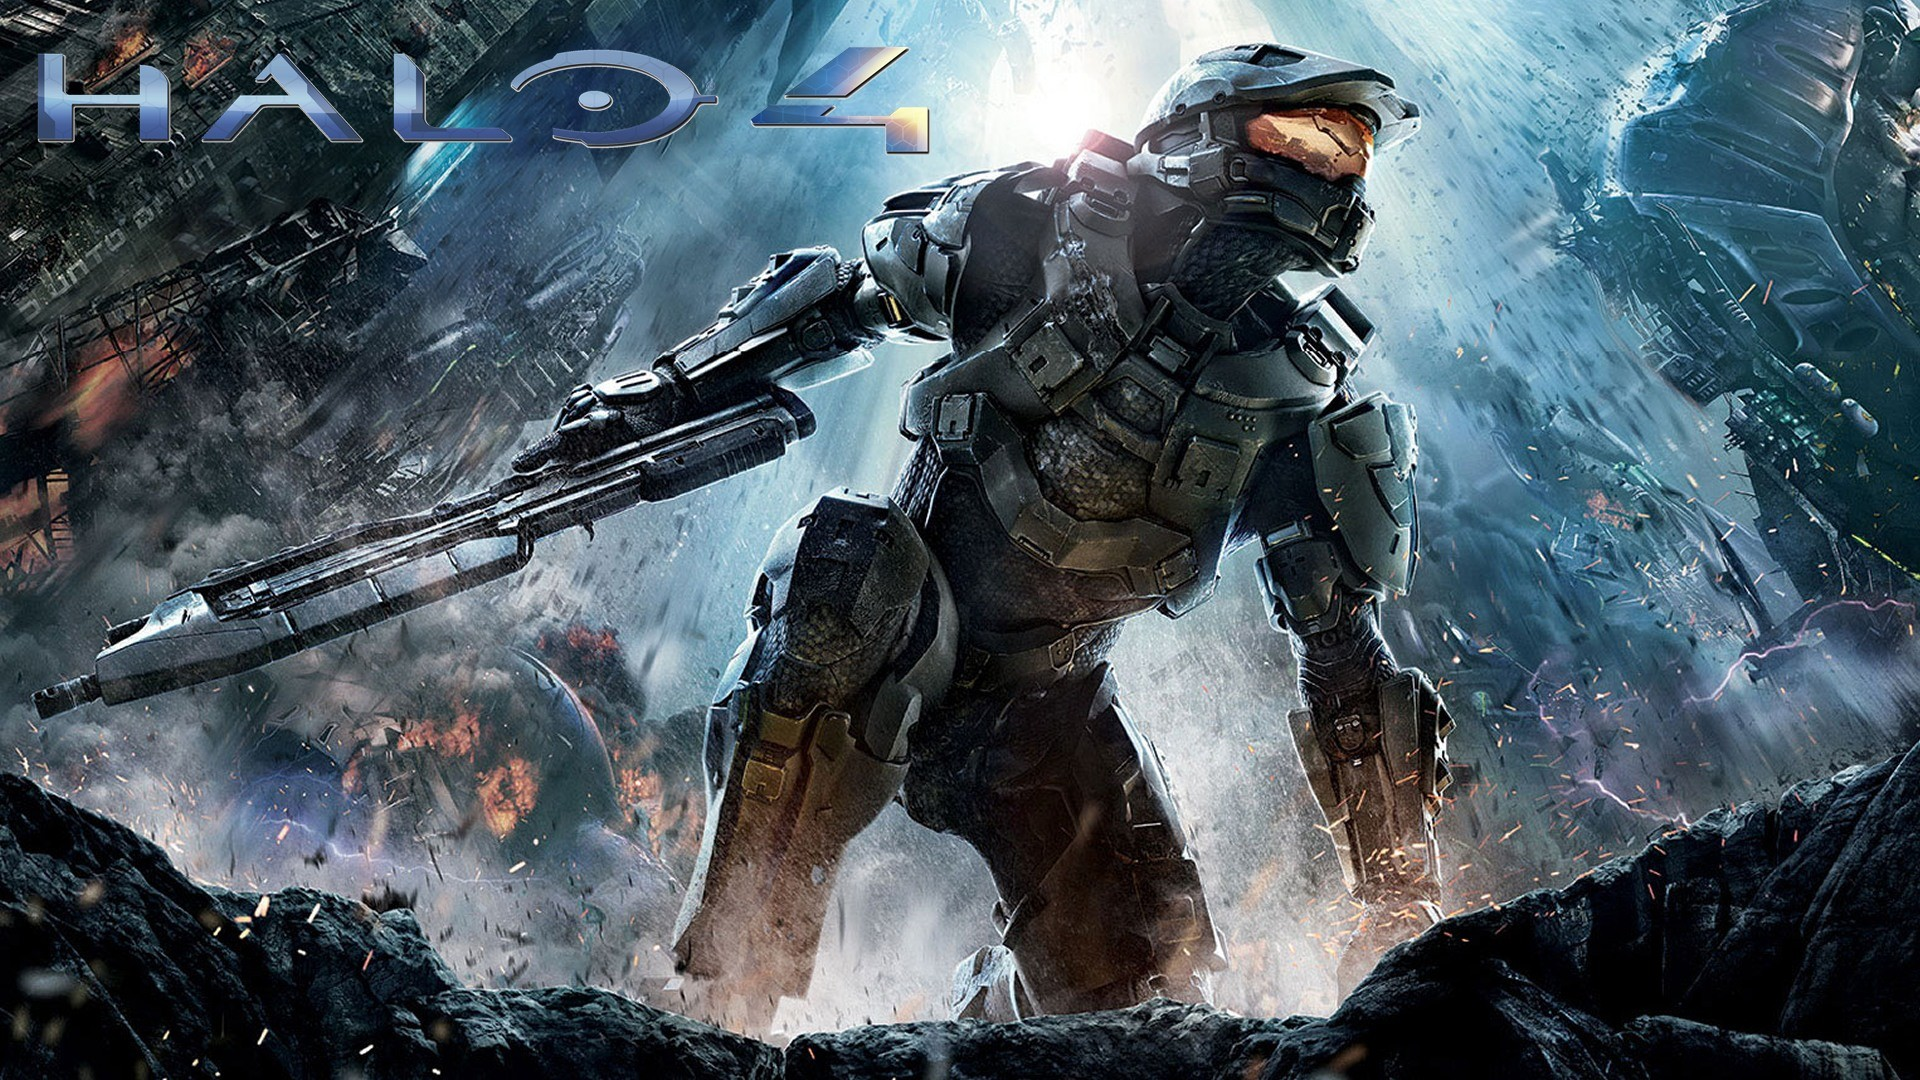 1920x1080 Wallpaper #5 Wallpaper from Halo 4